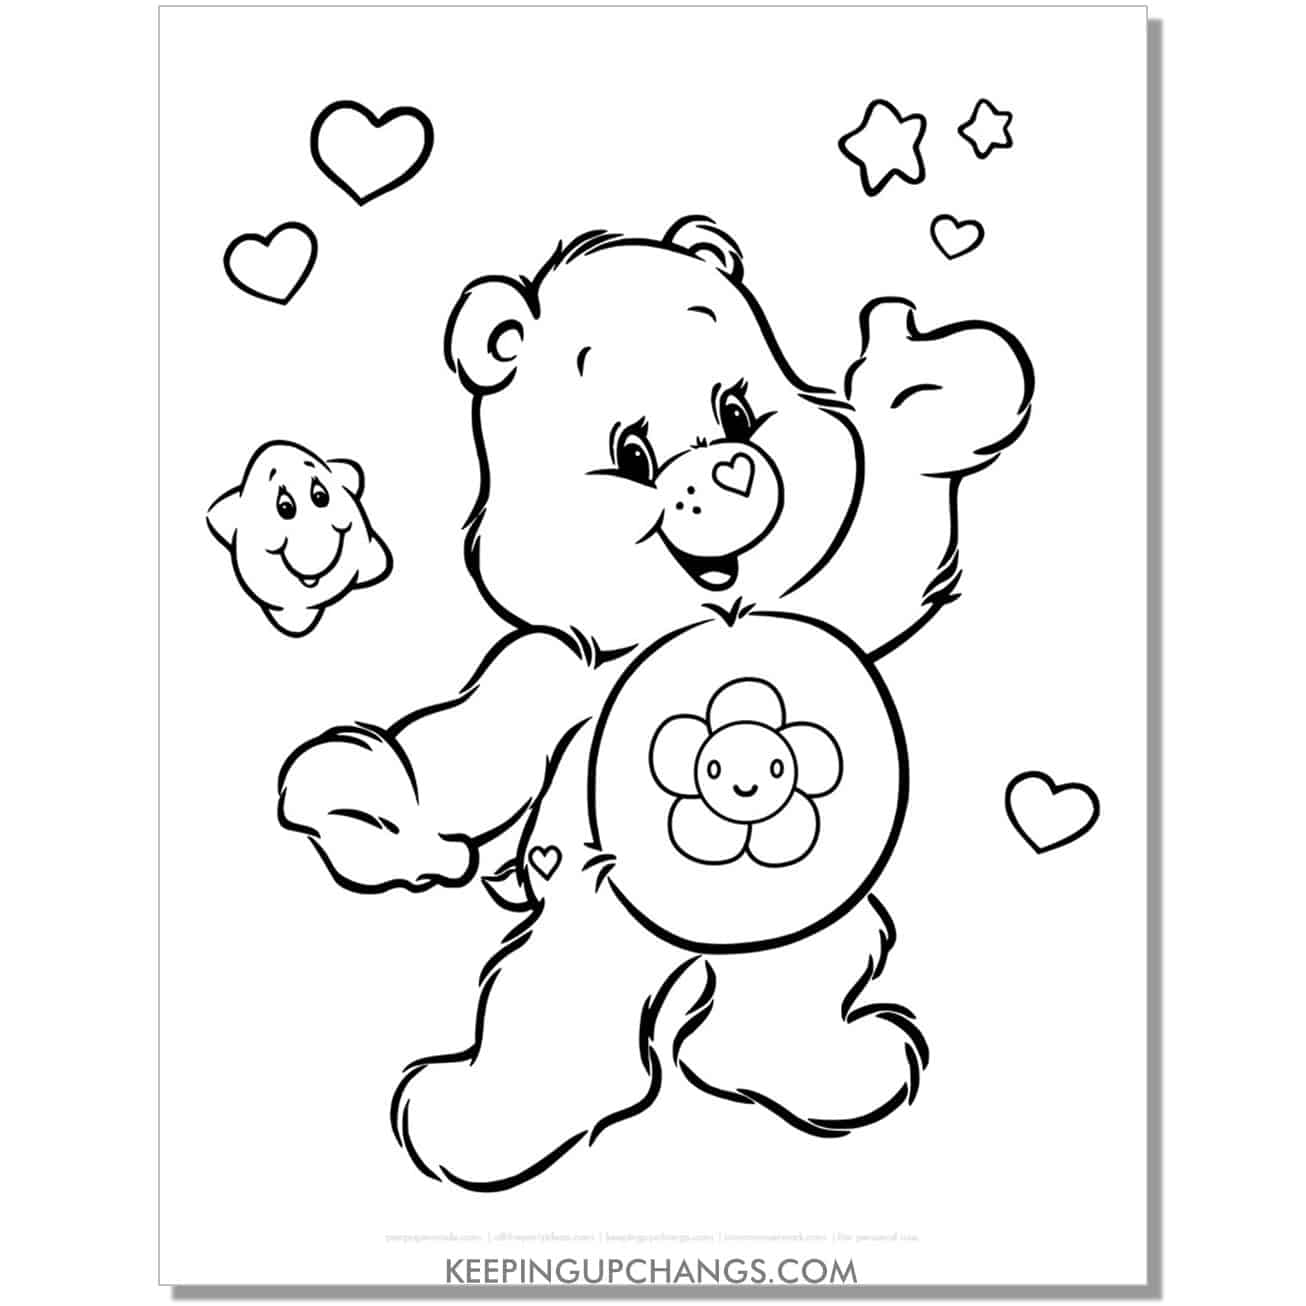 harmony care bear coloring page with stars and hearts.